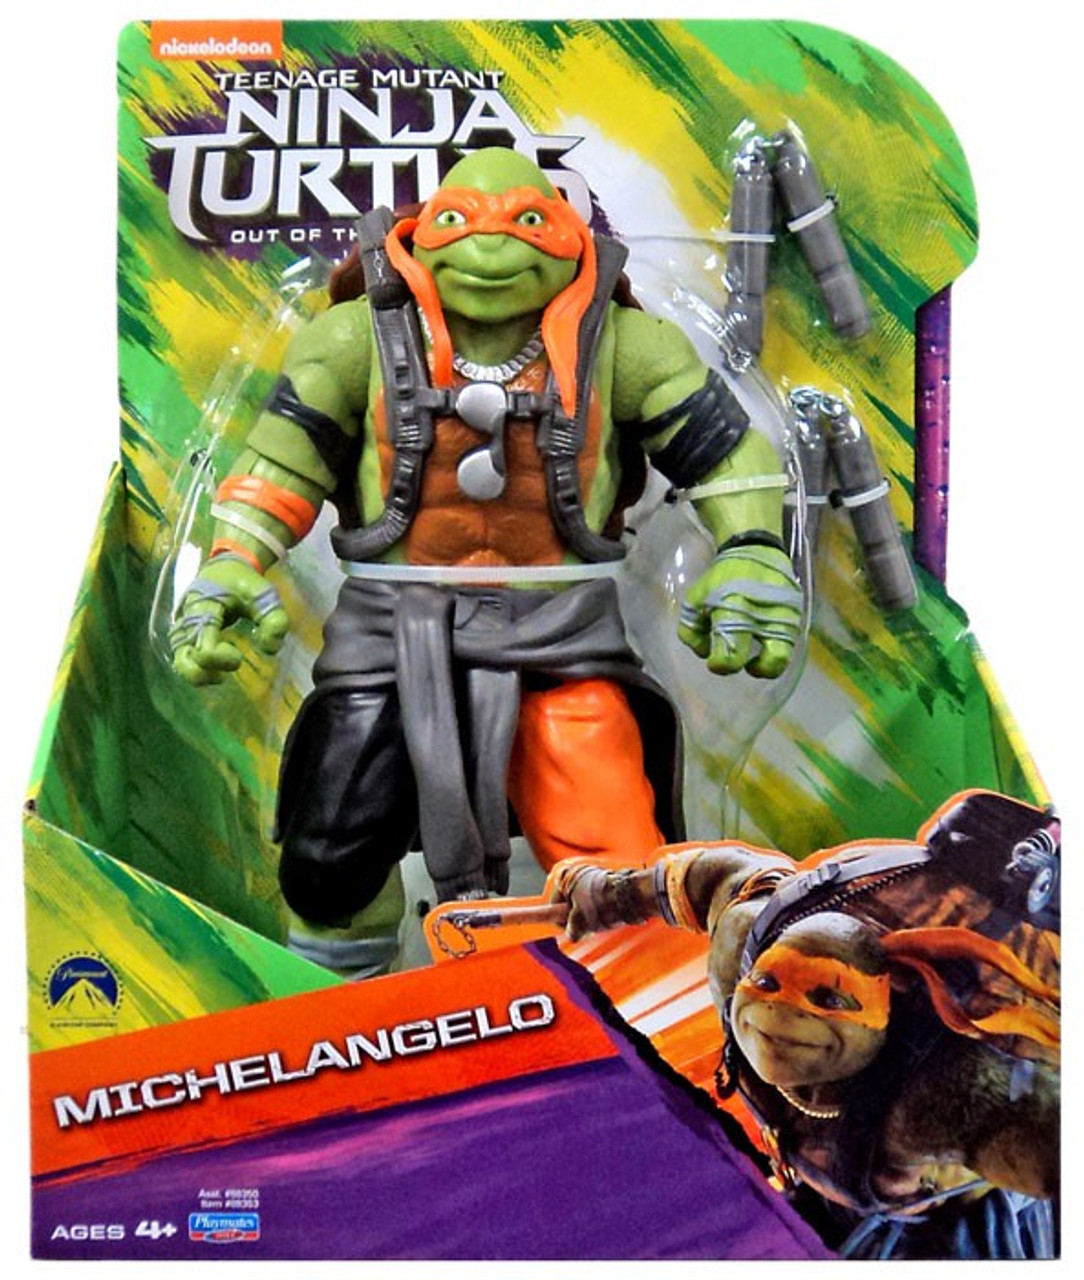 Teenage Mutant Ninja Turtles Out Of The Shadows Michelangelo Action Figure 11 Inch